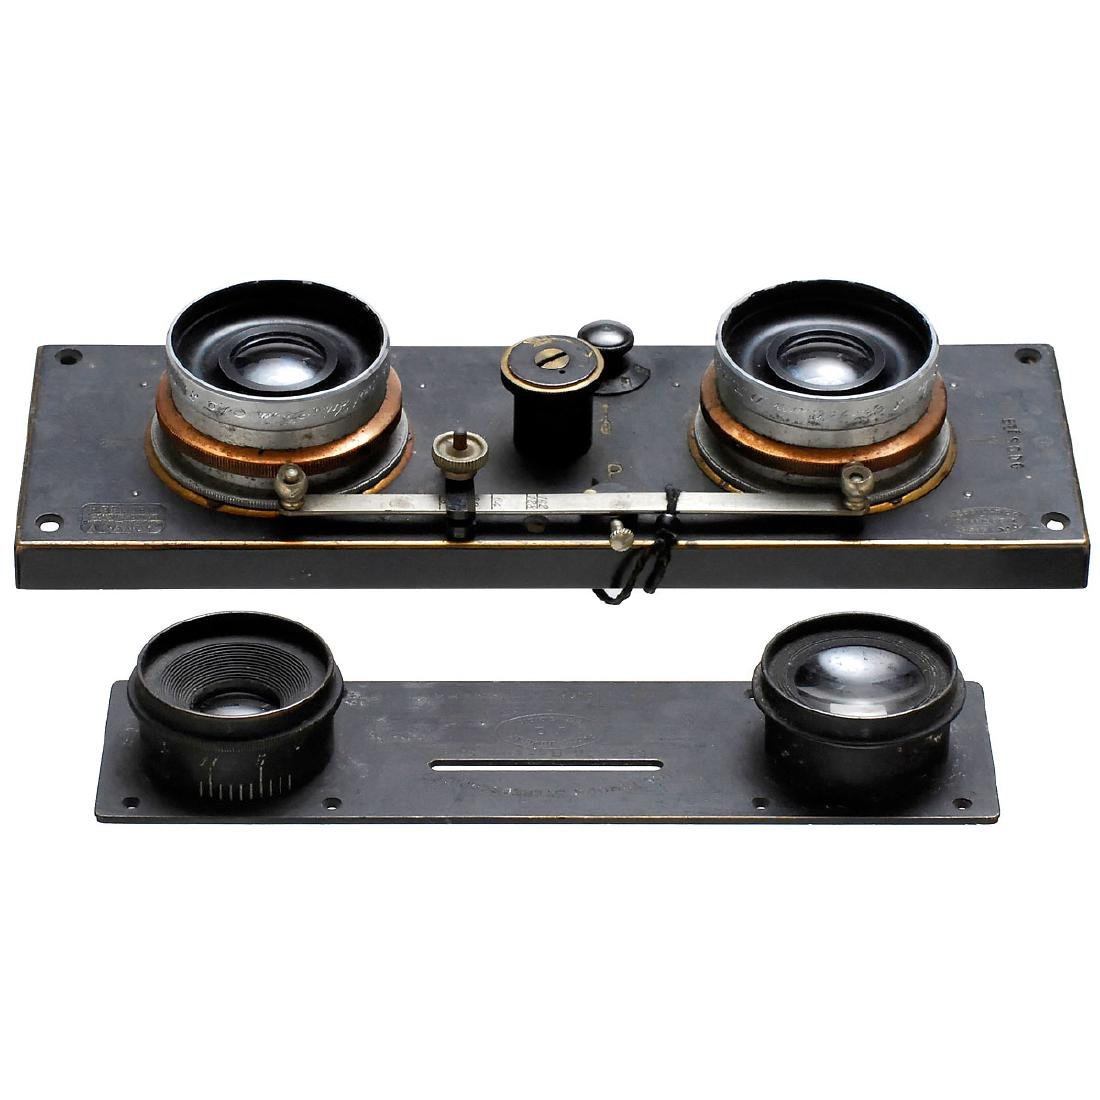 3 Pairs of Stereo Lenses, 1900–1925 - 3